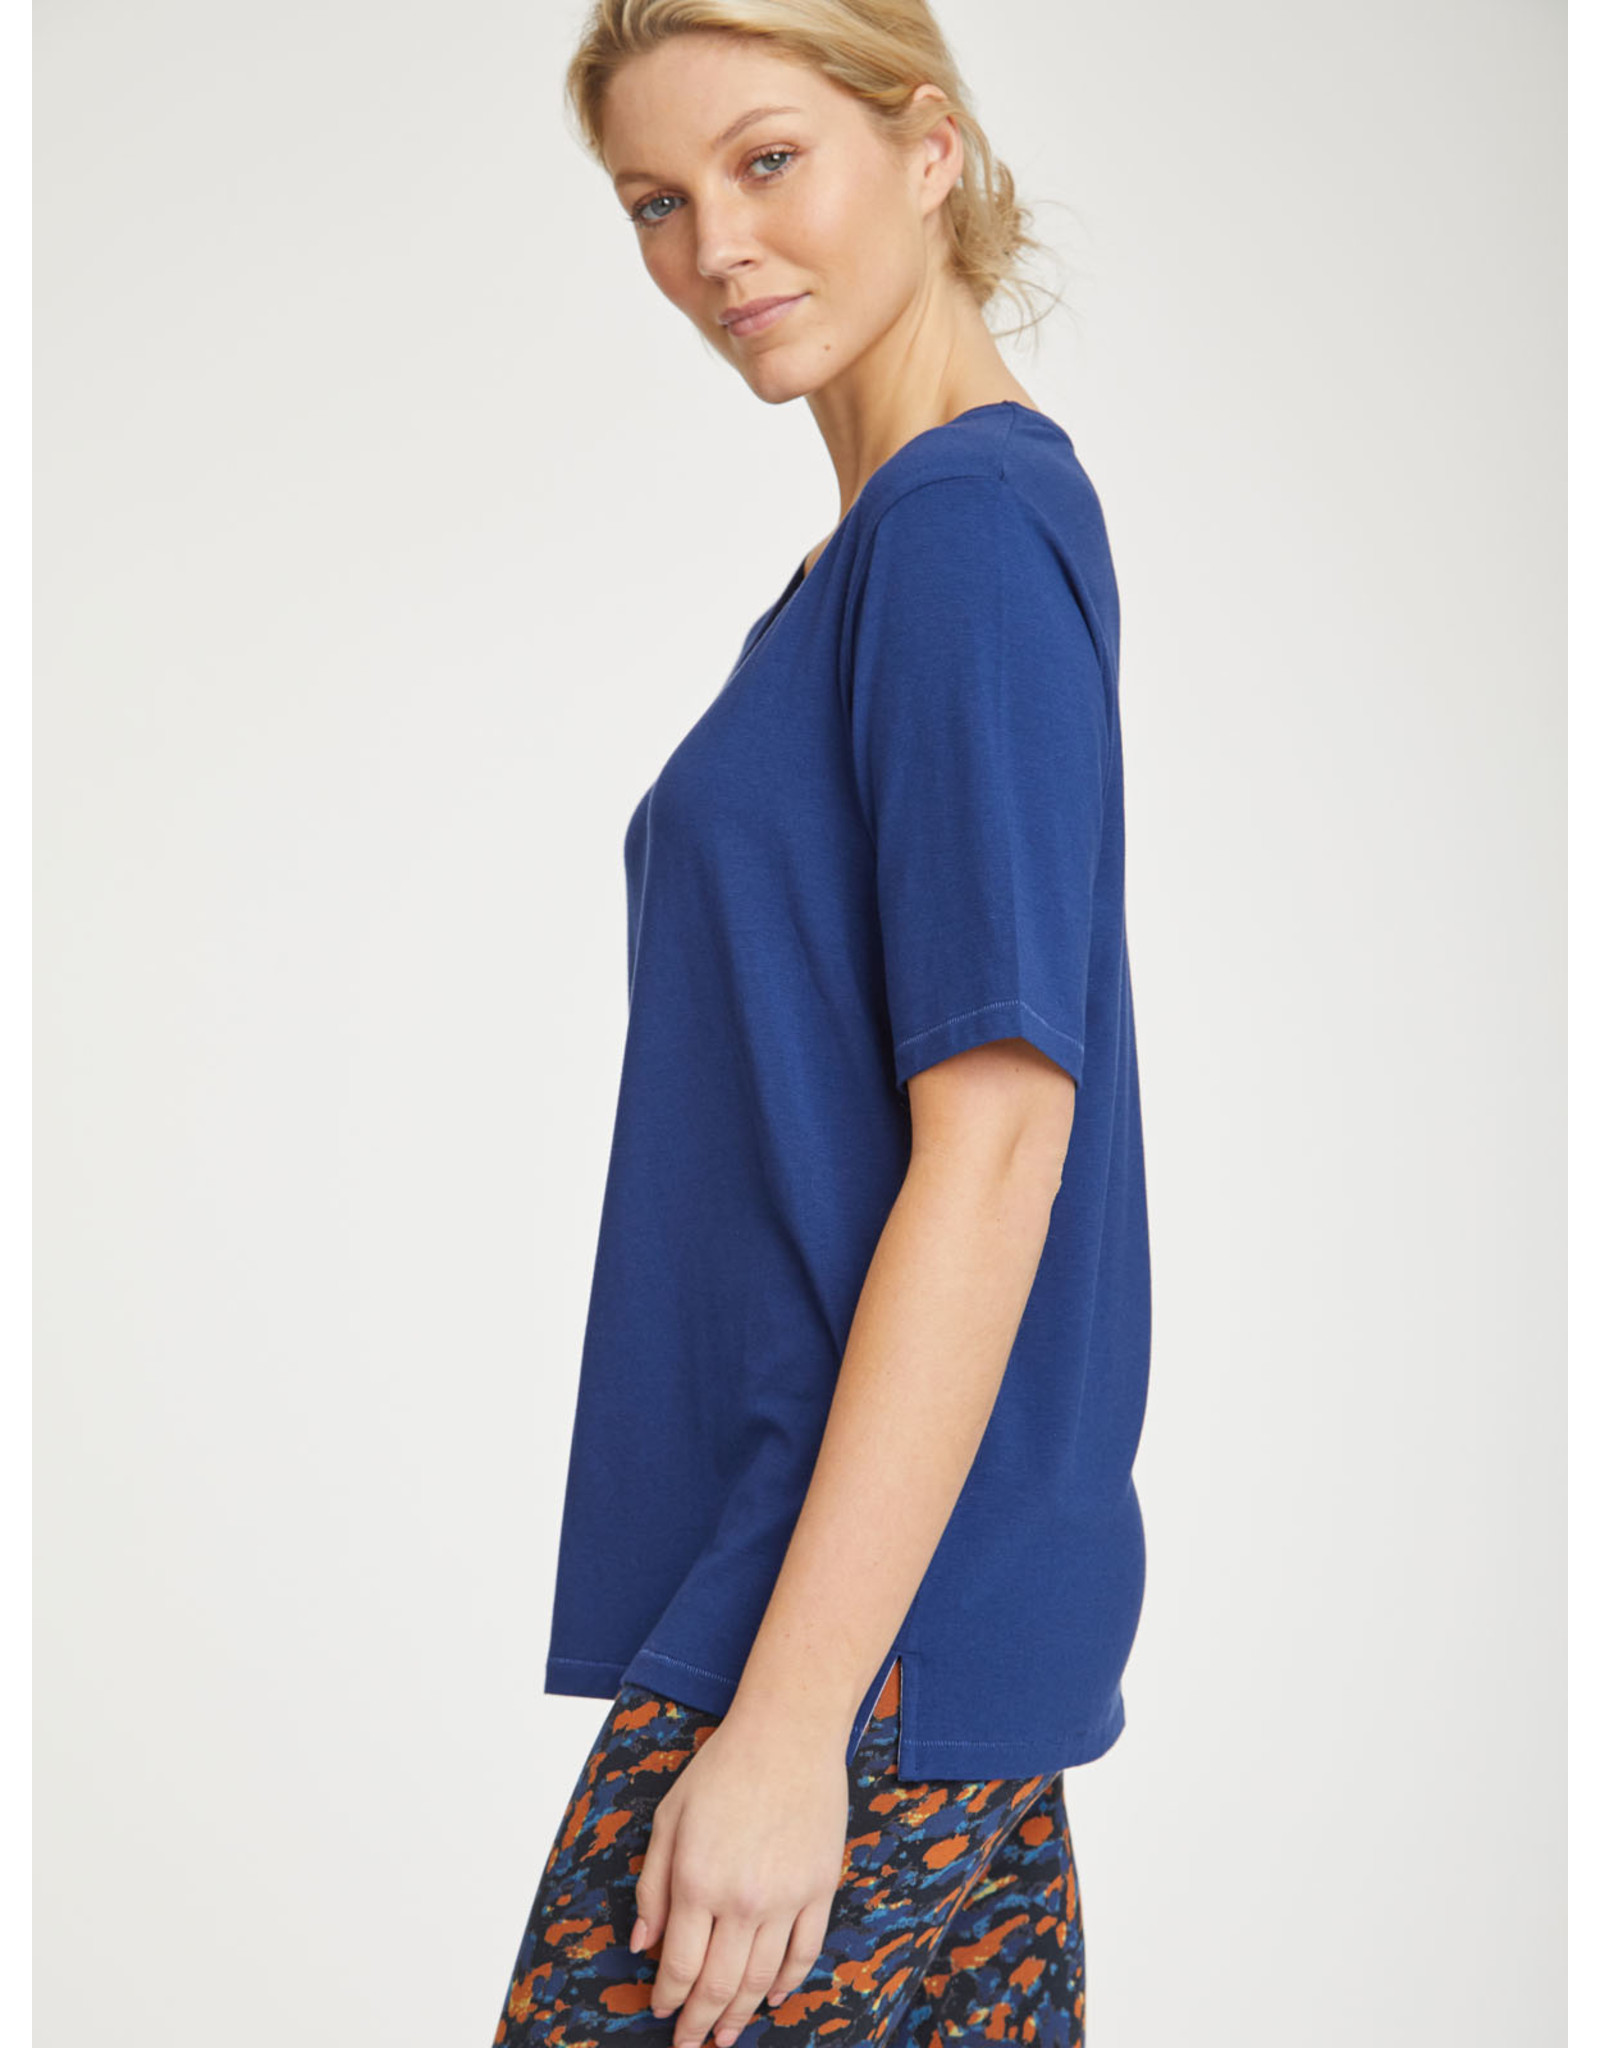 Thought Thought Bamboo Tee